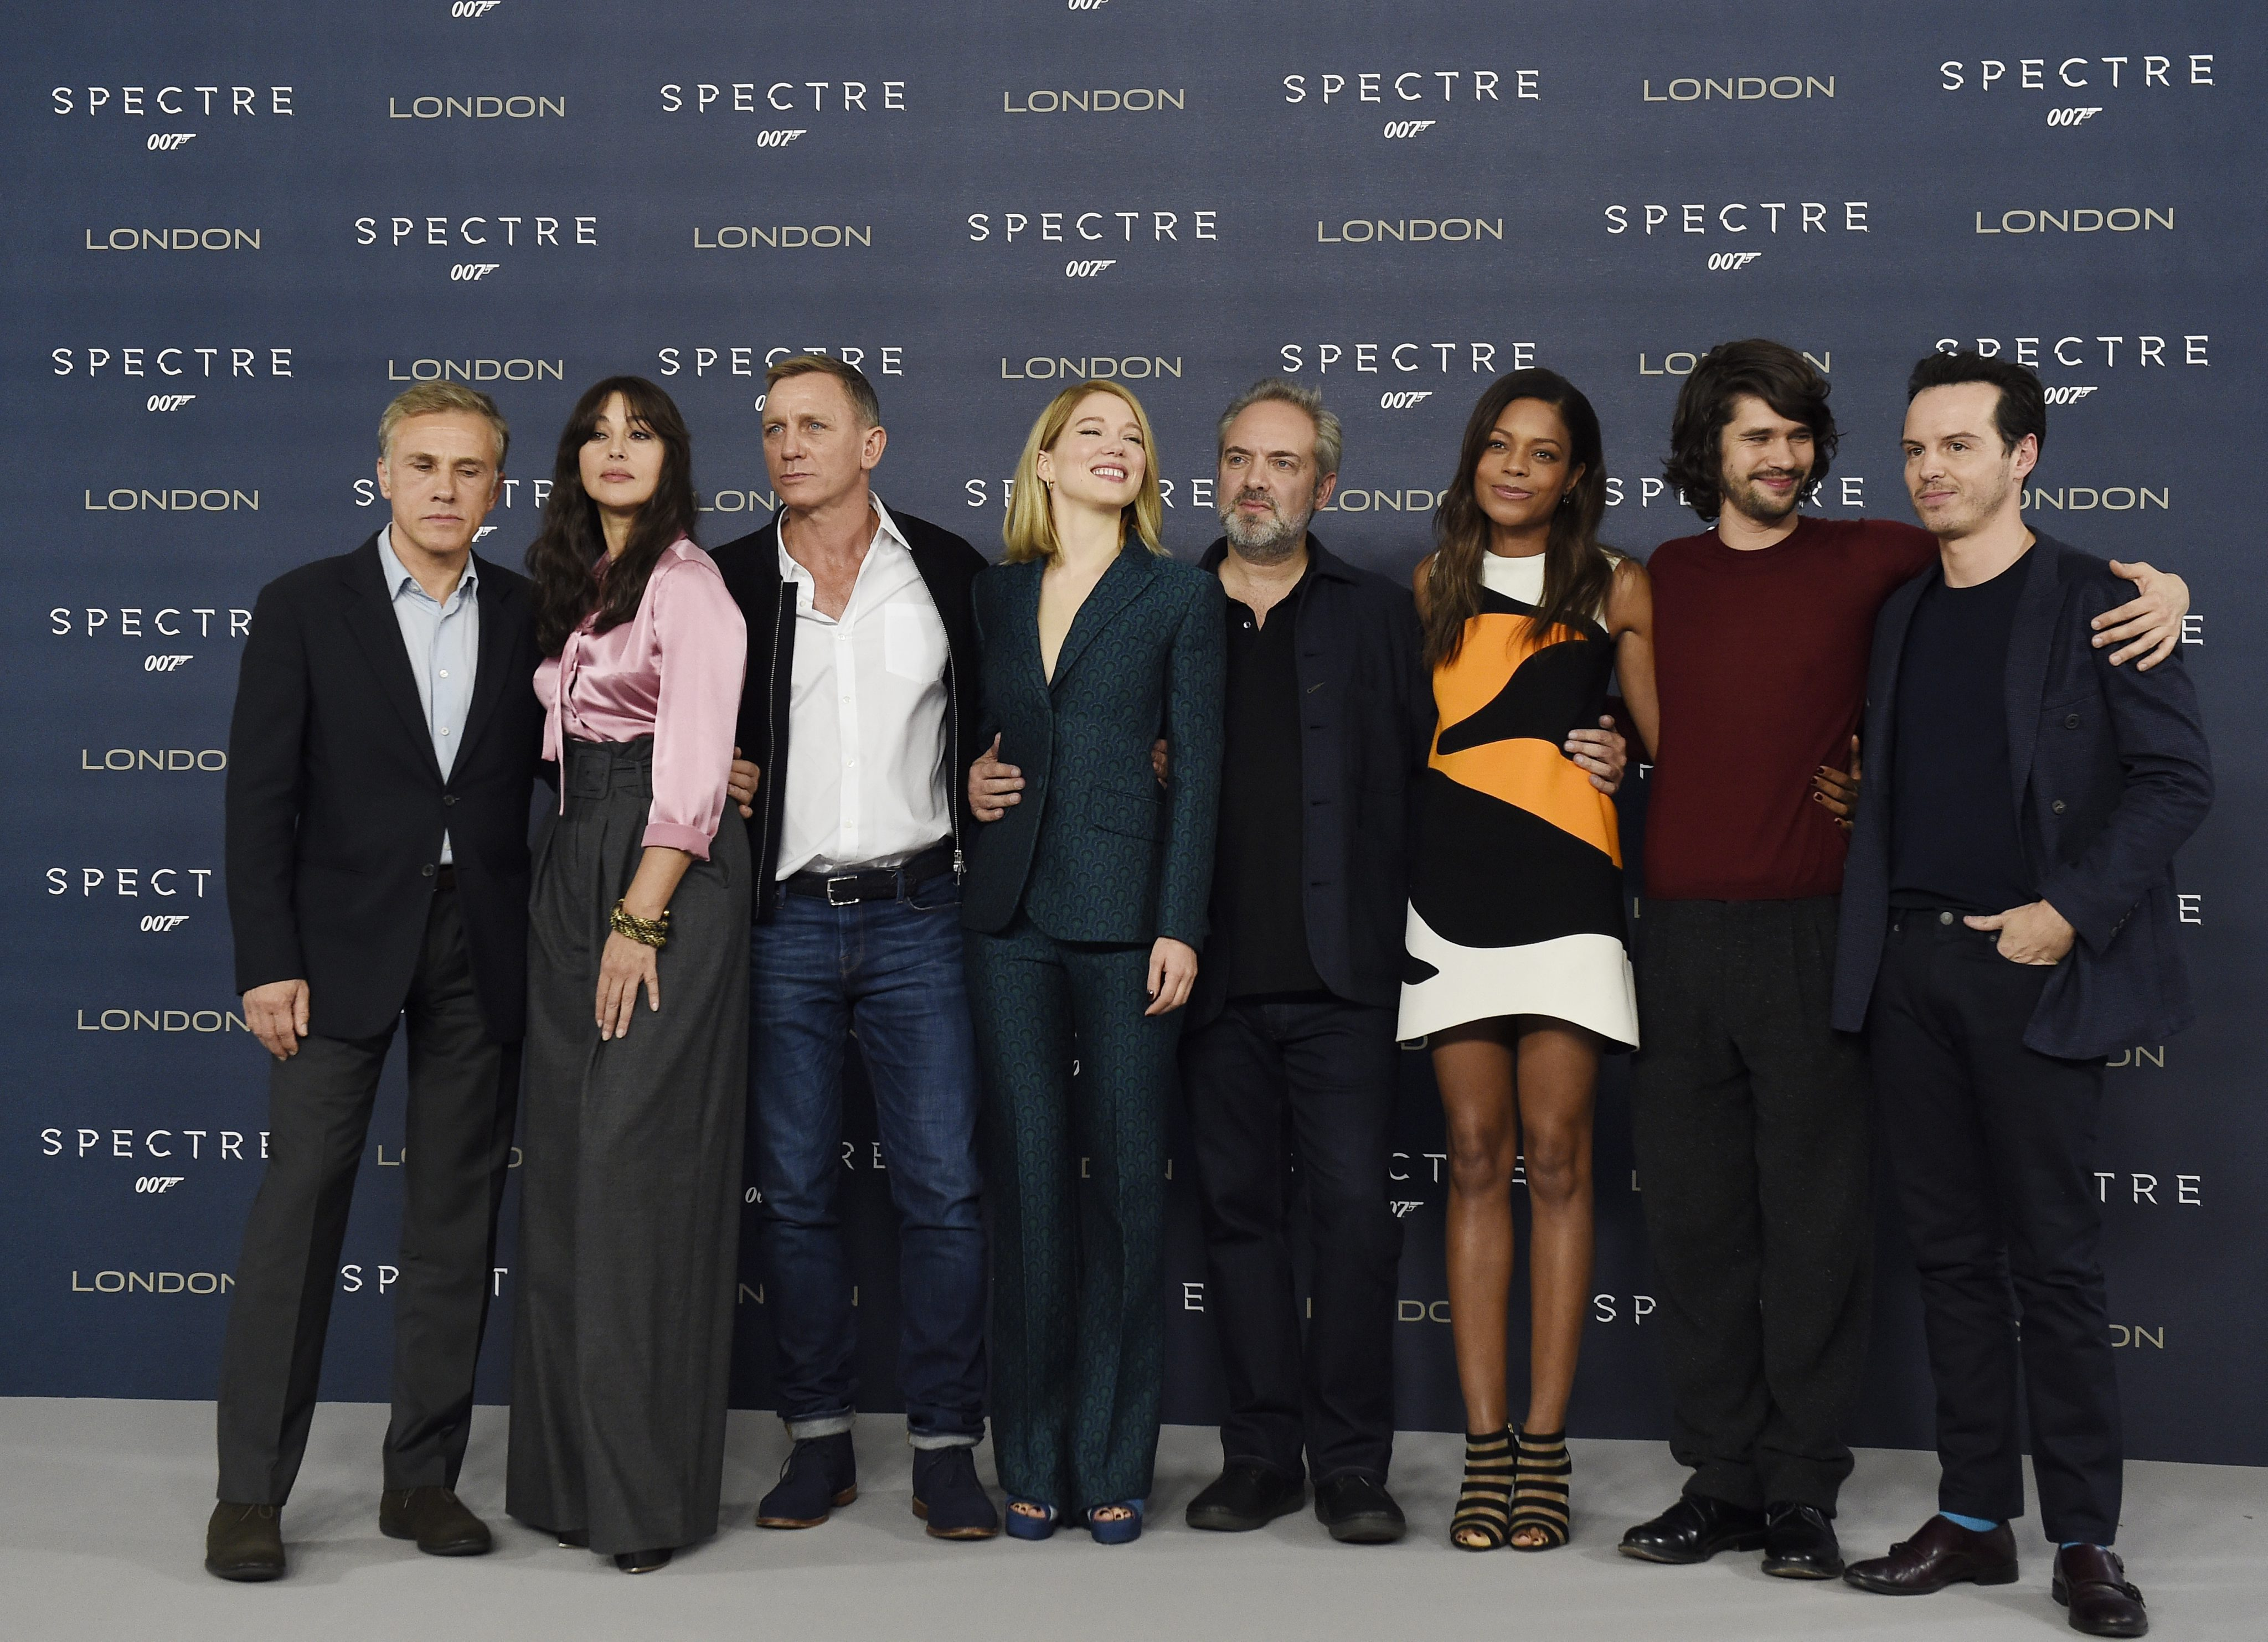 Here's how you can watch the world premiere of the new James Bond film Spectre live